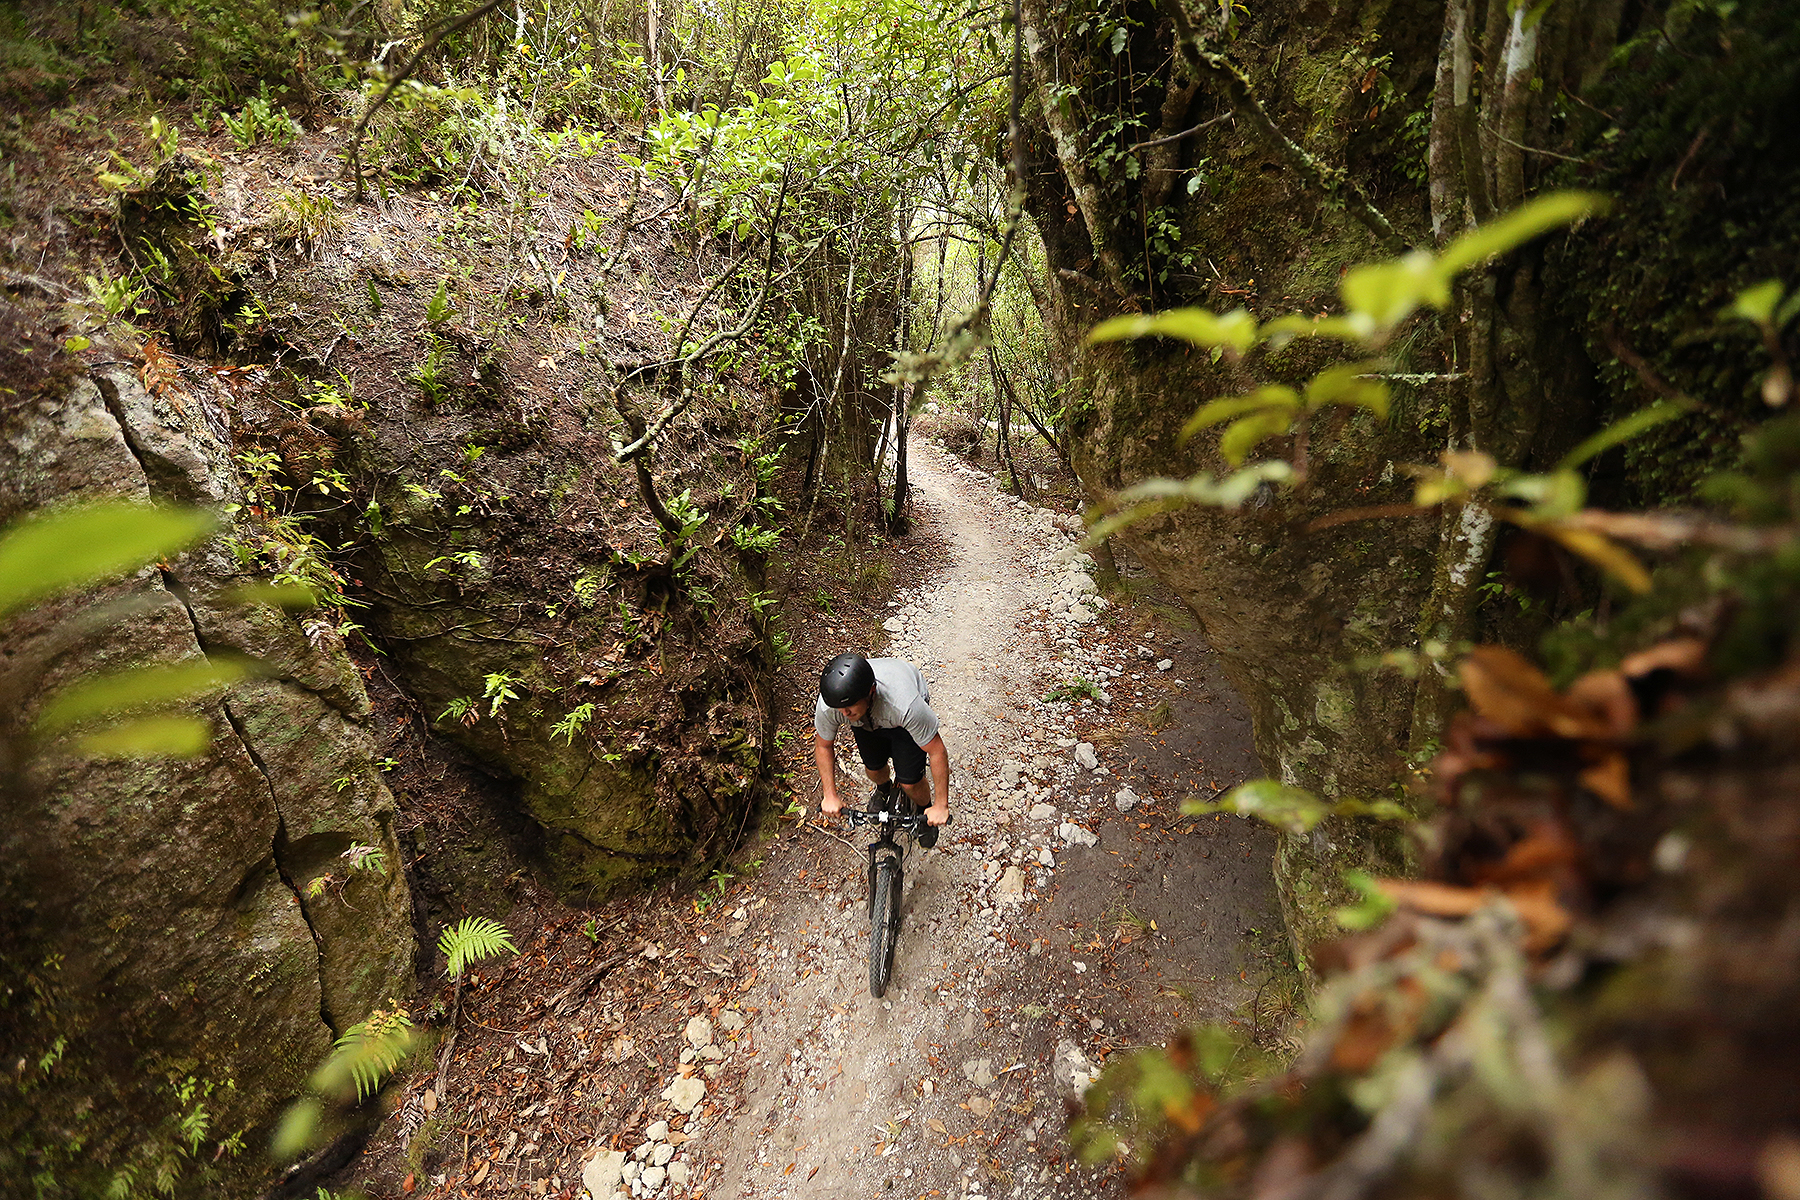 Waihora_Mountain_Bike_Trail_Image_1U0A0642